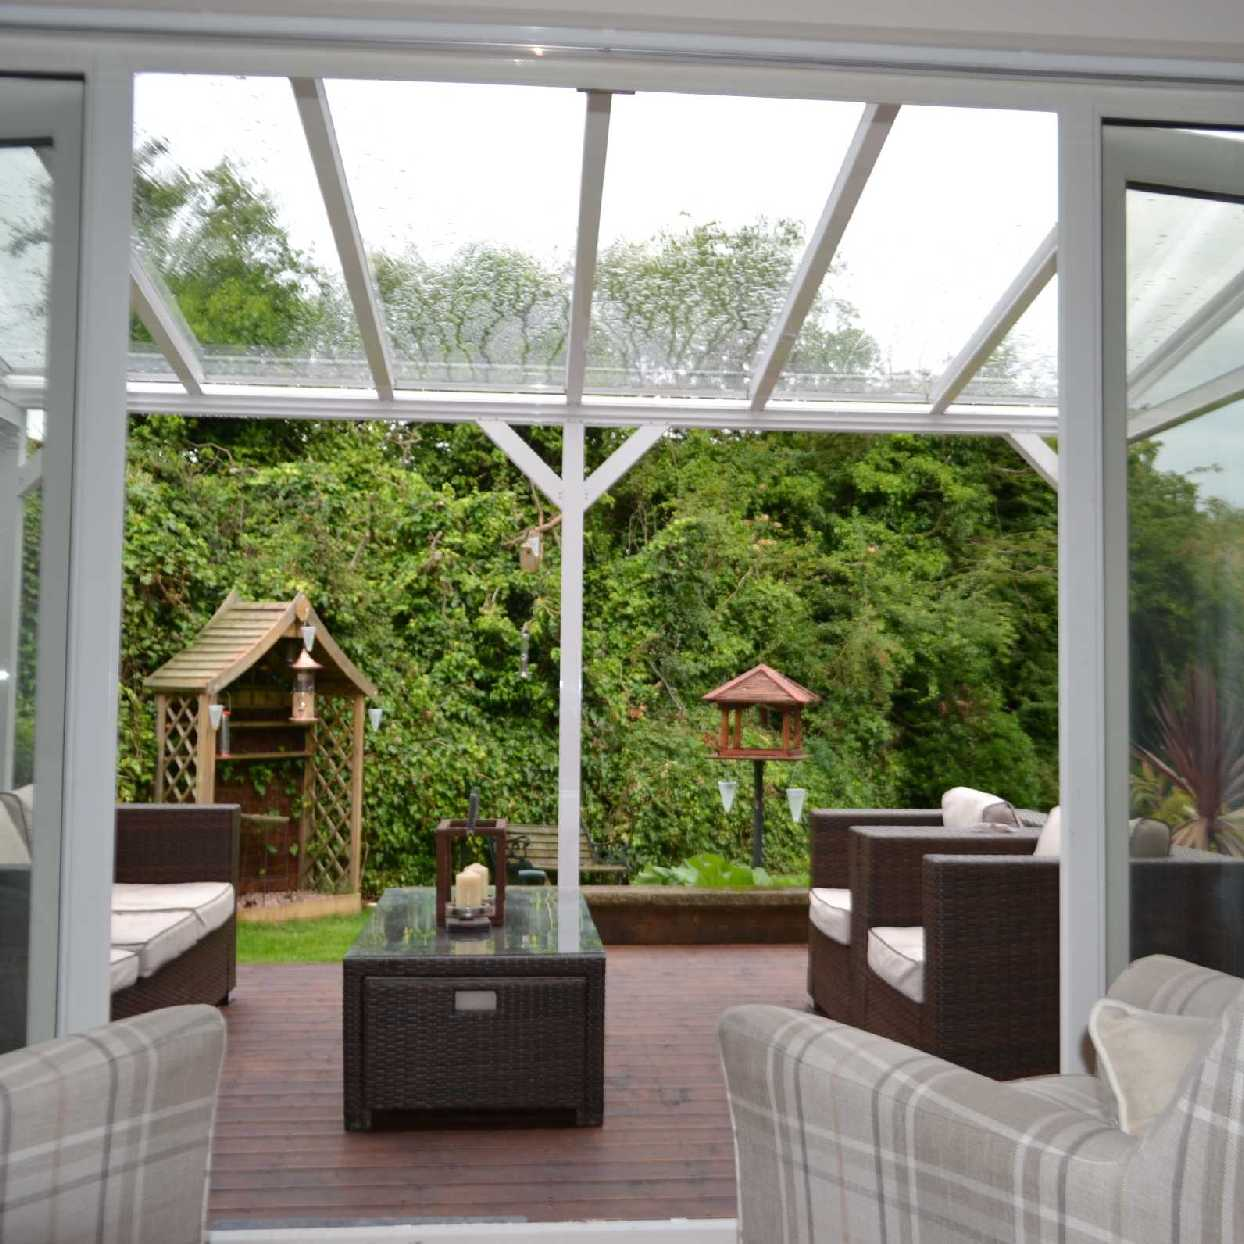 Great selection of Omega Smart White Lean-To Canopy UNGLAZED for 6mm Glazing - 7.7m (W) x 2.0m (P), (4) Supporting Posts